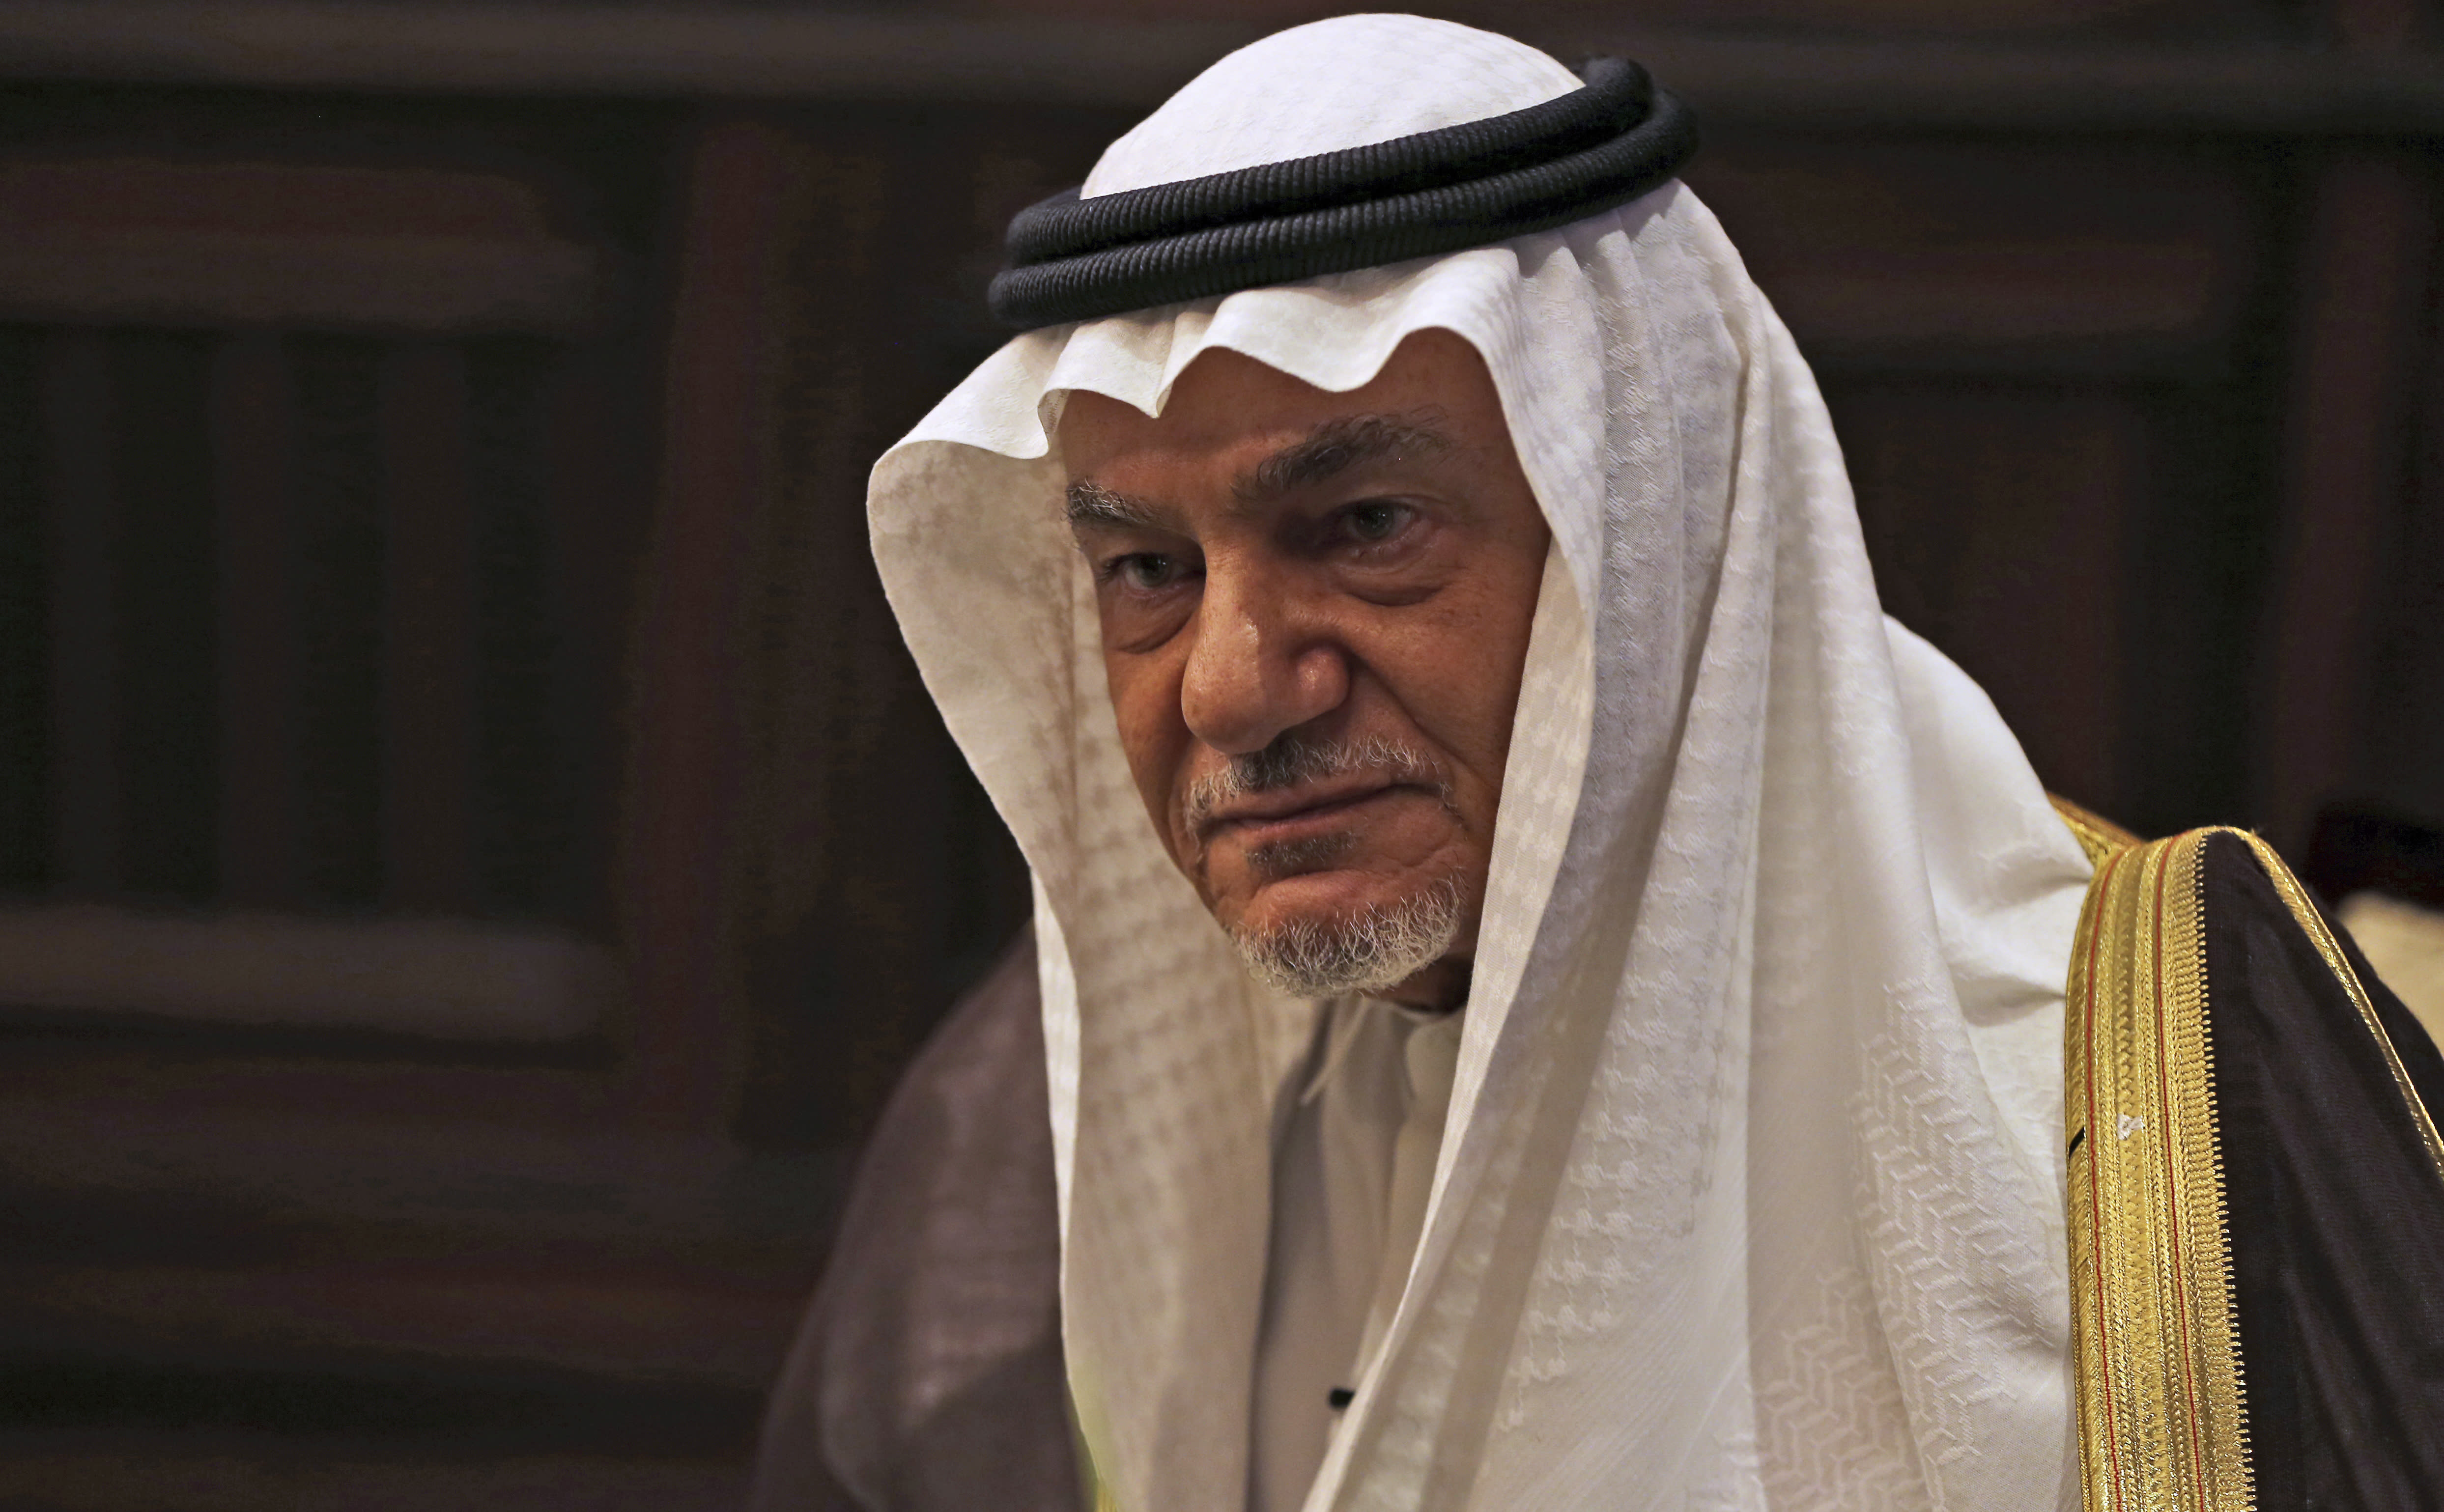 """Saudi Prince Turki al-Faisal talks to the Associated Press in Abu Dhabi, United Arab Emirates, Saturday Nov. 24, 2018. A prominent Saudi royal says whether or not heads of state gathered in Argentina next week for the Group of 20 summit warmly engage with Crown Prince Mohammed bin Salman, he is someone """"that they have to deal with."""" Prince Turki al-Faisal told The Associated Press the kingdom """"will have to bear"""" that its reputation has been tarred by the killing of Saudi writer Jamal Khashoggi in its Istanbul consulate last month. (AP Photo/Kamran Jebreili)"""